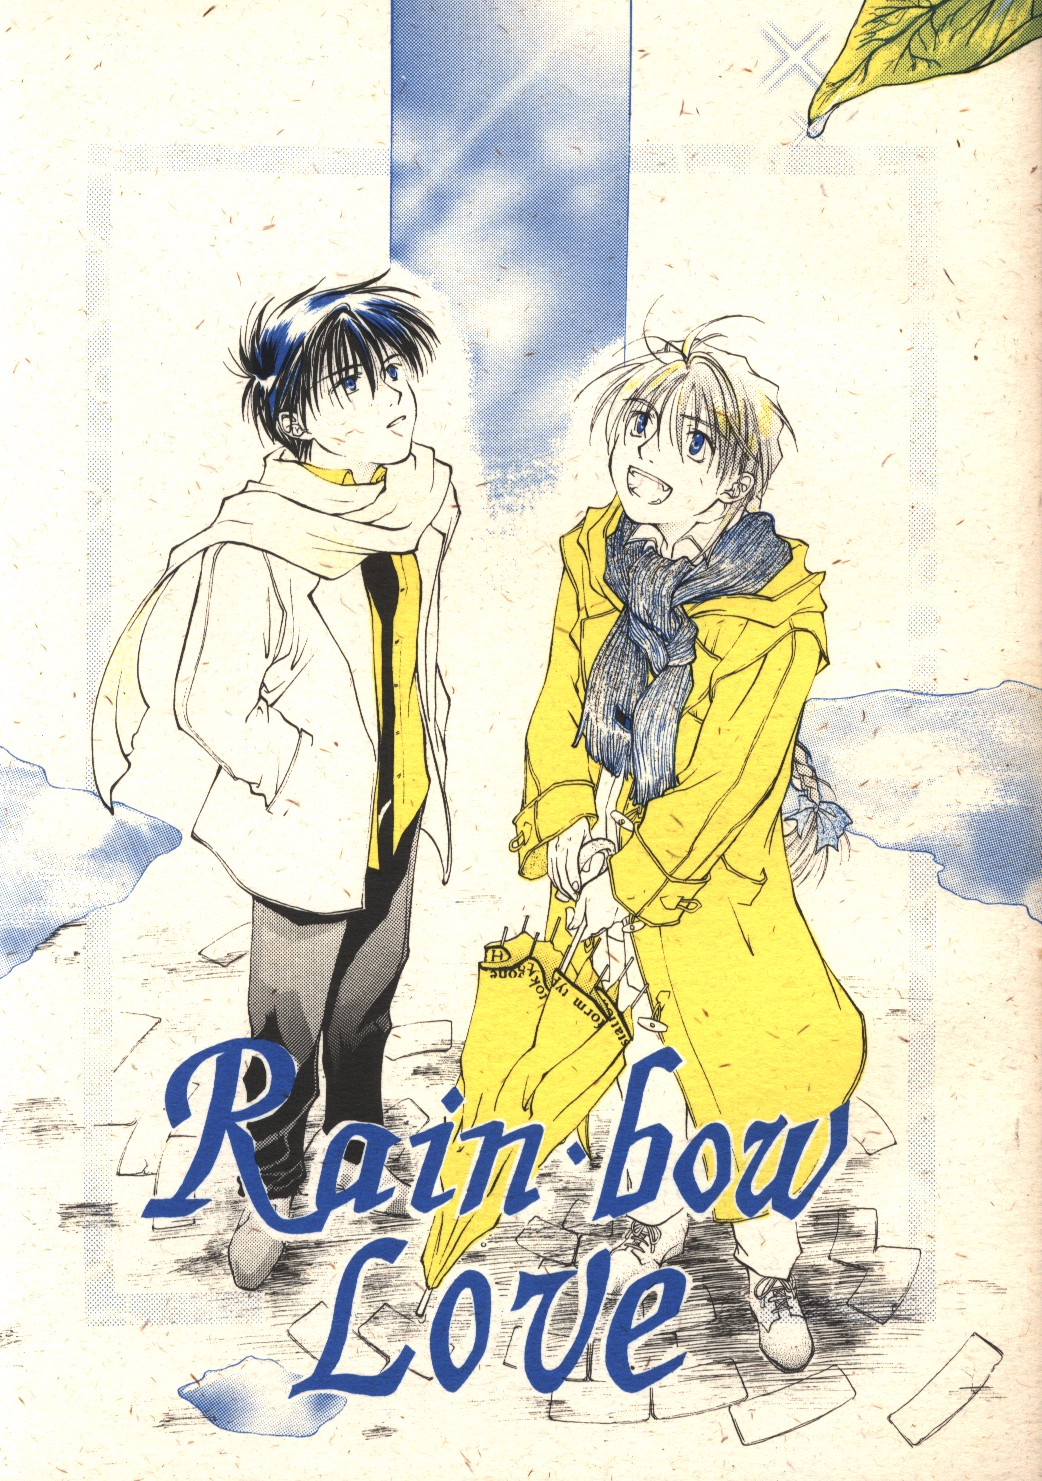 Doujinshi - Mobile Suit Gundam Wing / Duo Maxwell x Heero Yuy (Rain・bow Love) / REPLICA ZONE